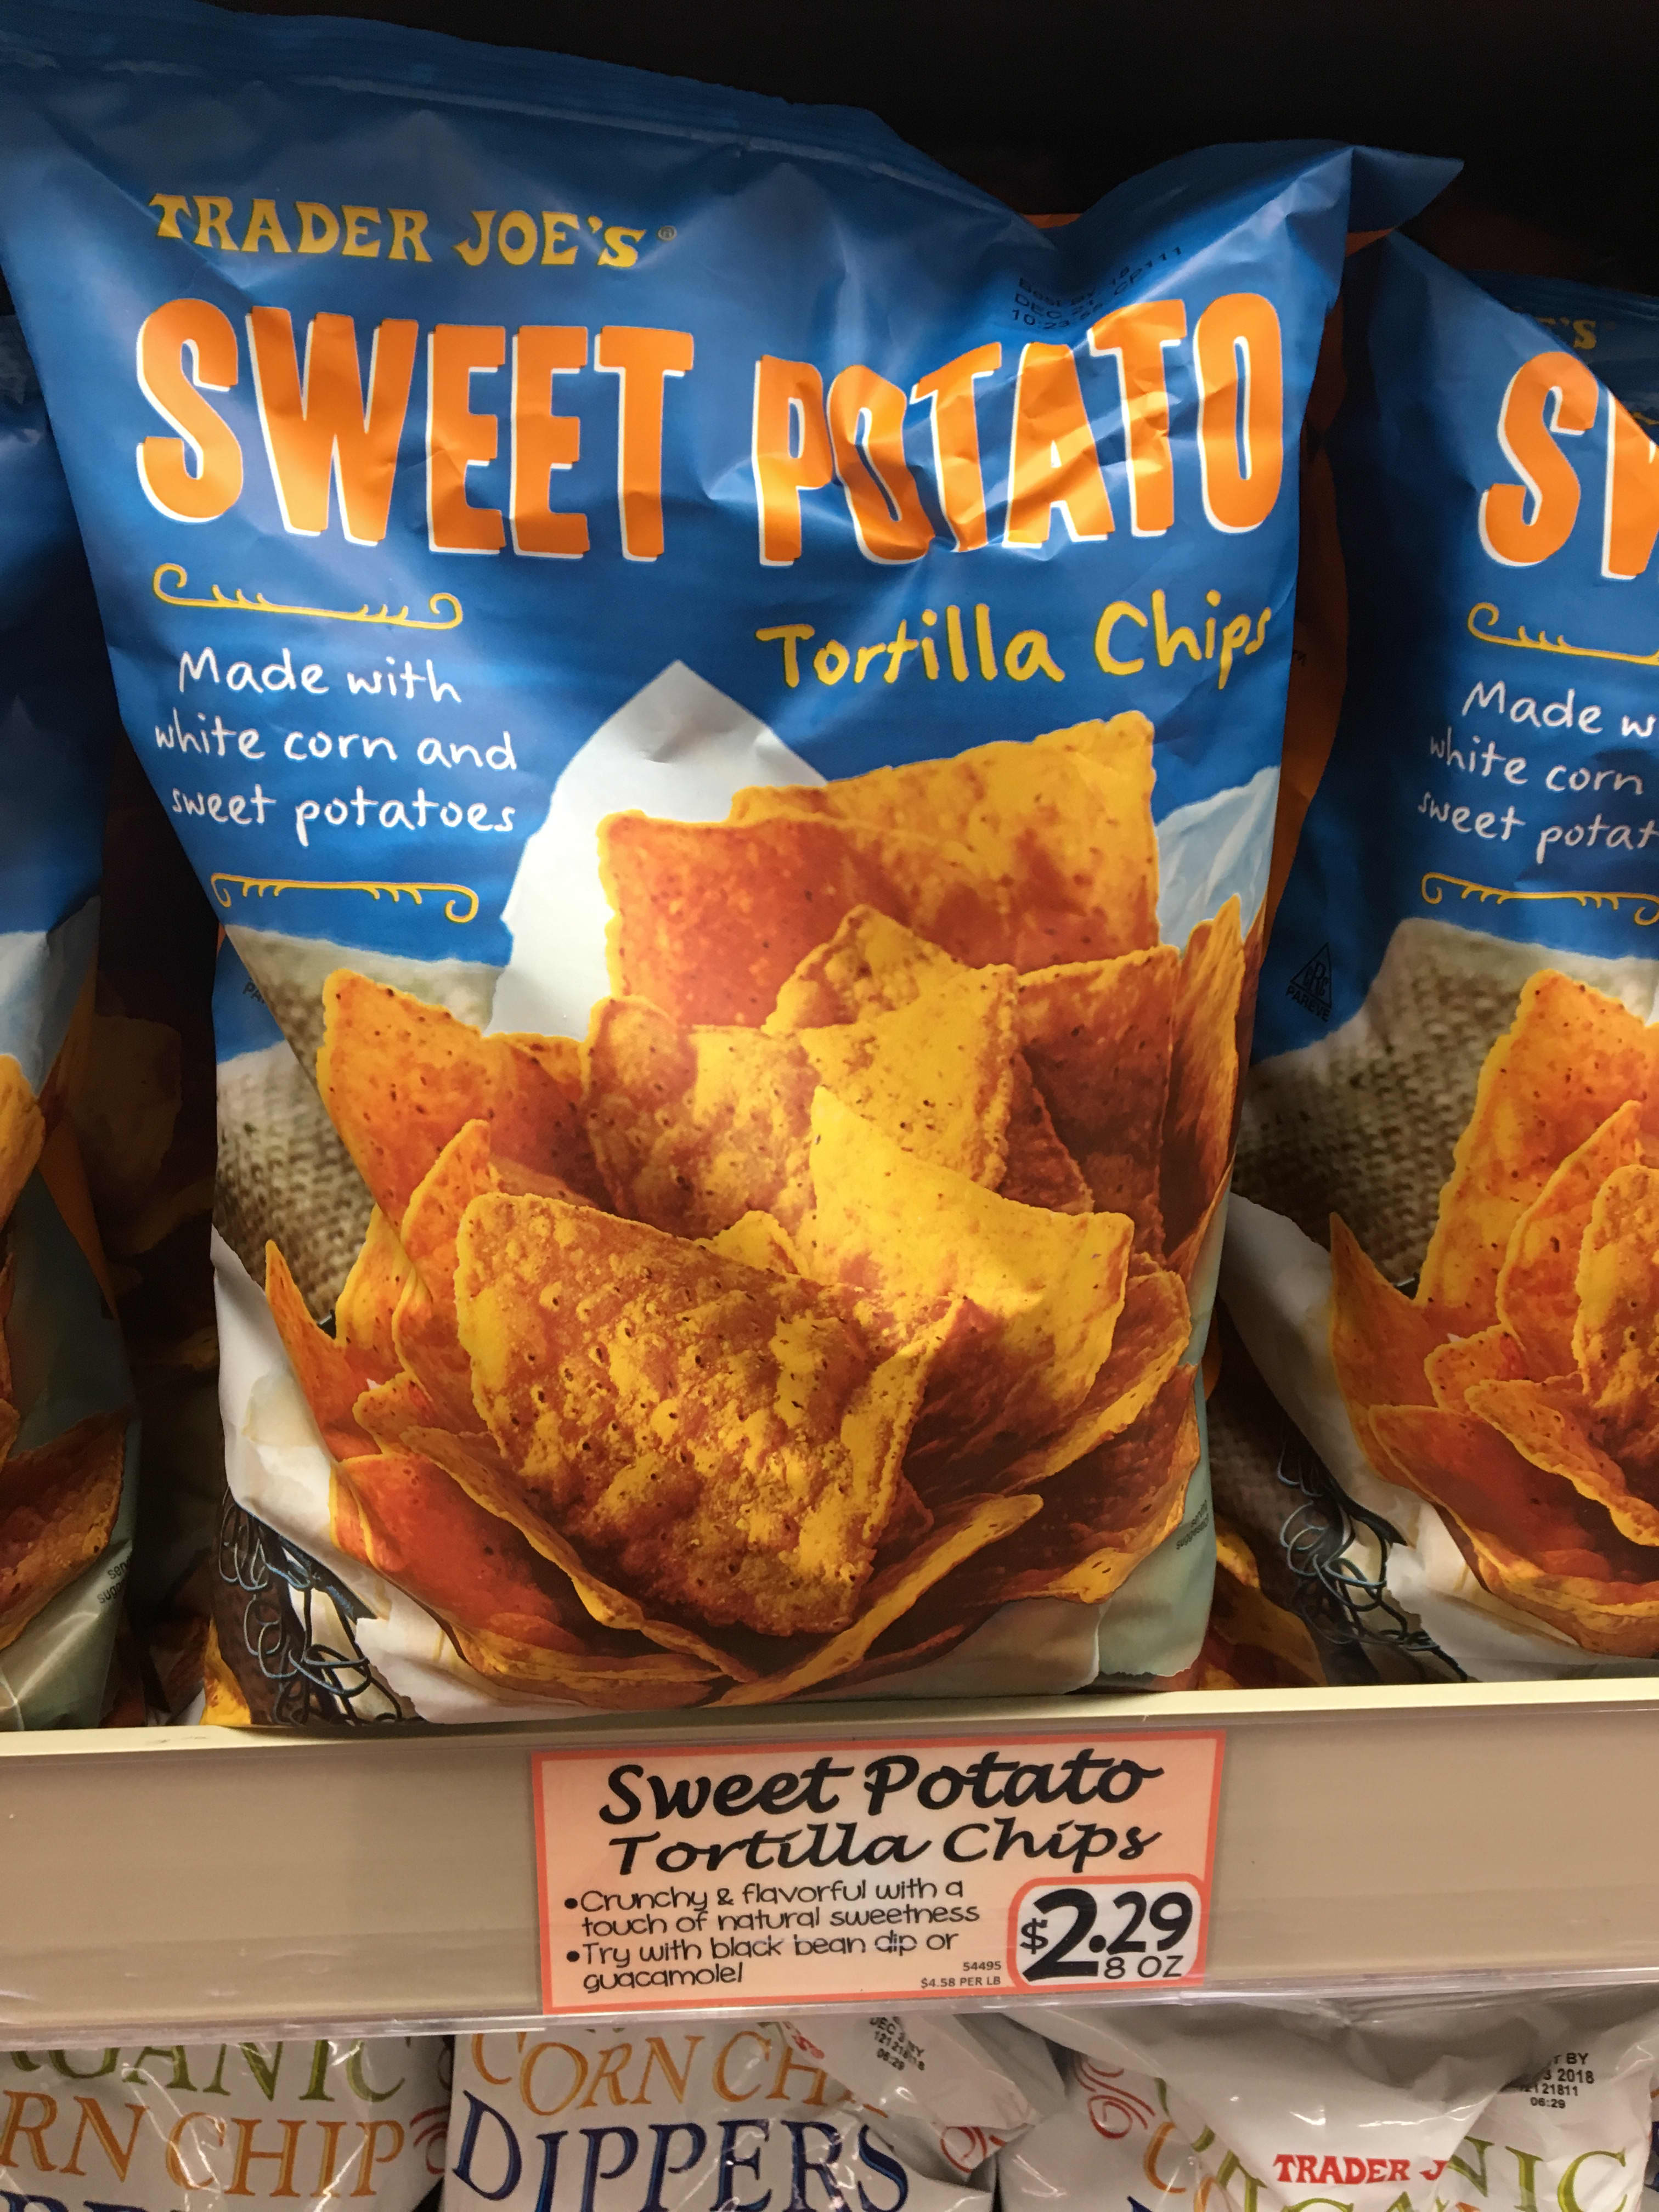 15 Lunch Box Snacks You Should Add to Your Trader Joe's Shopping List: gallery image 2